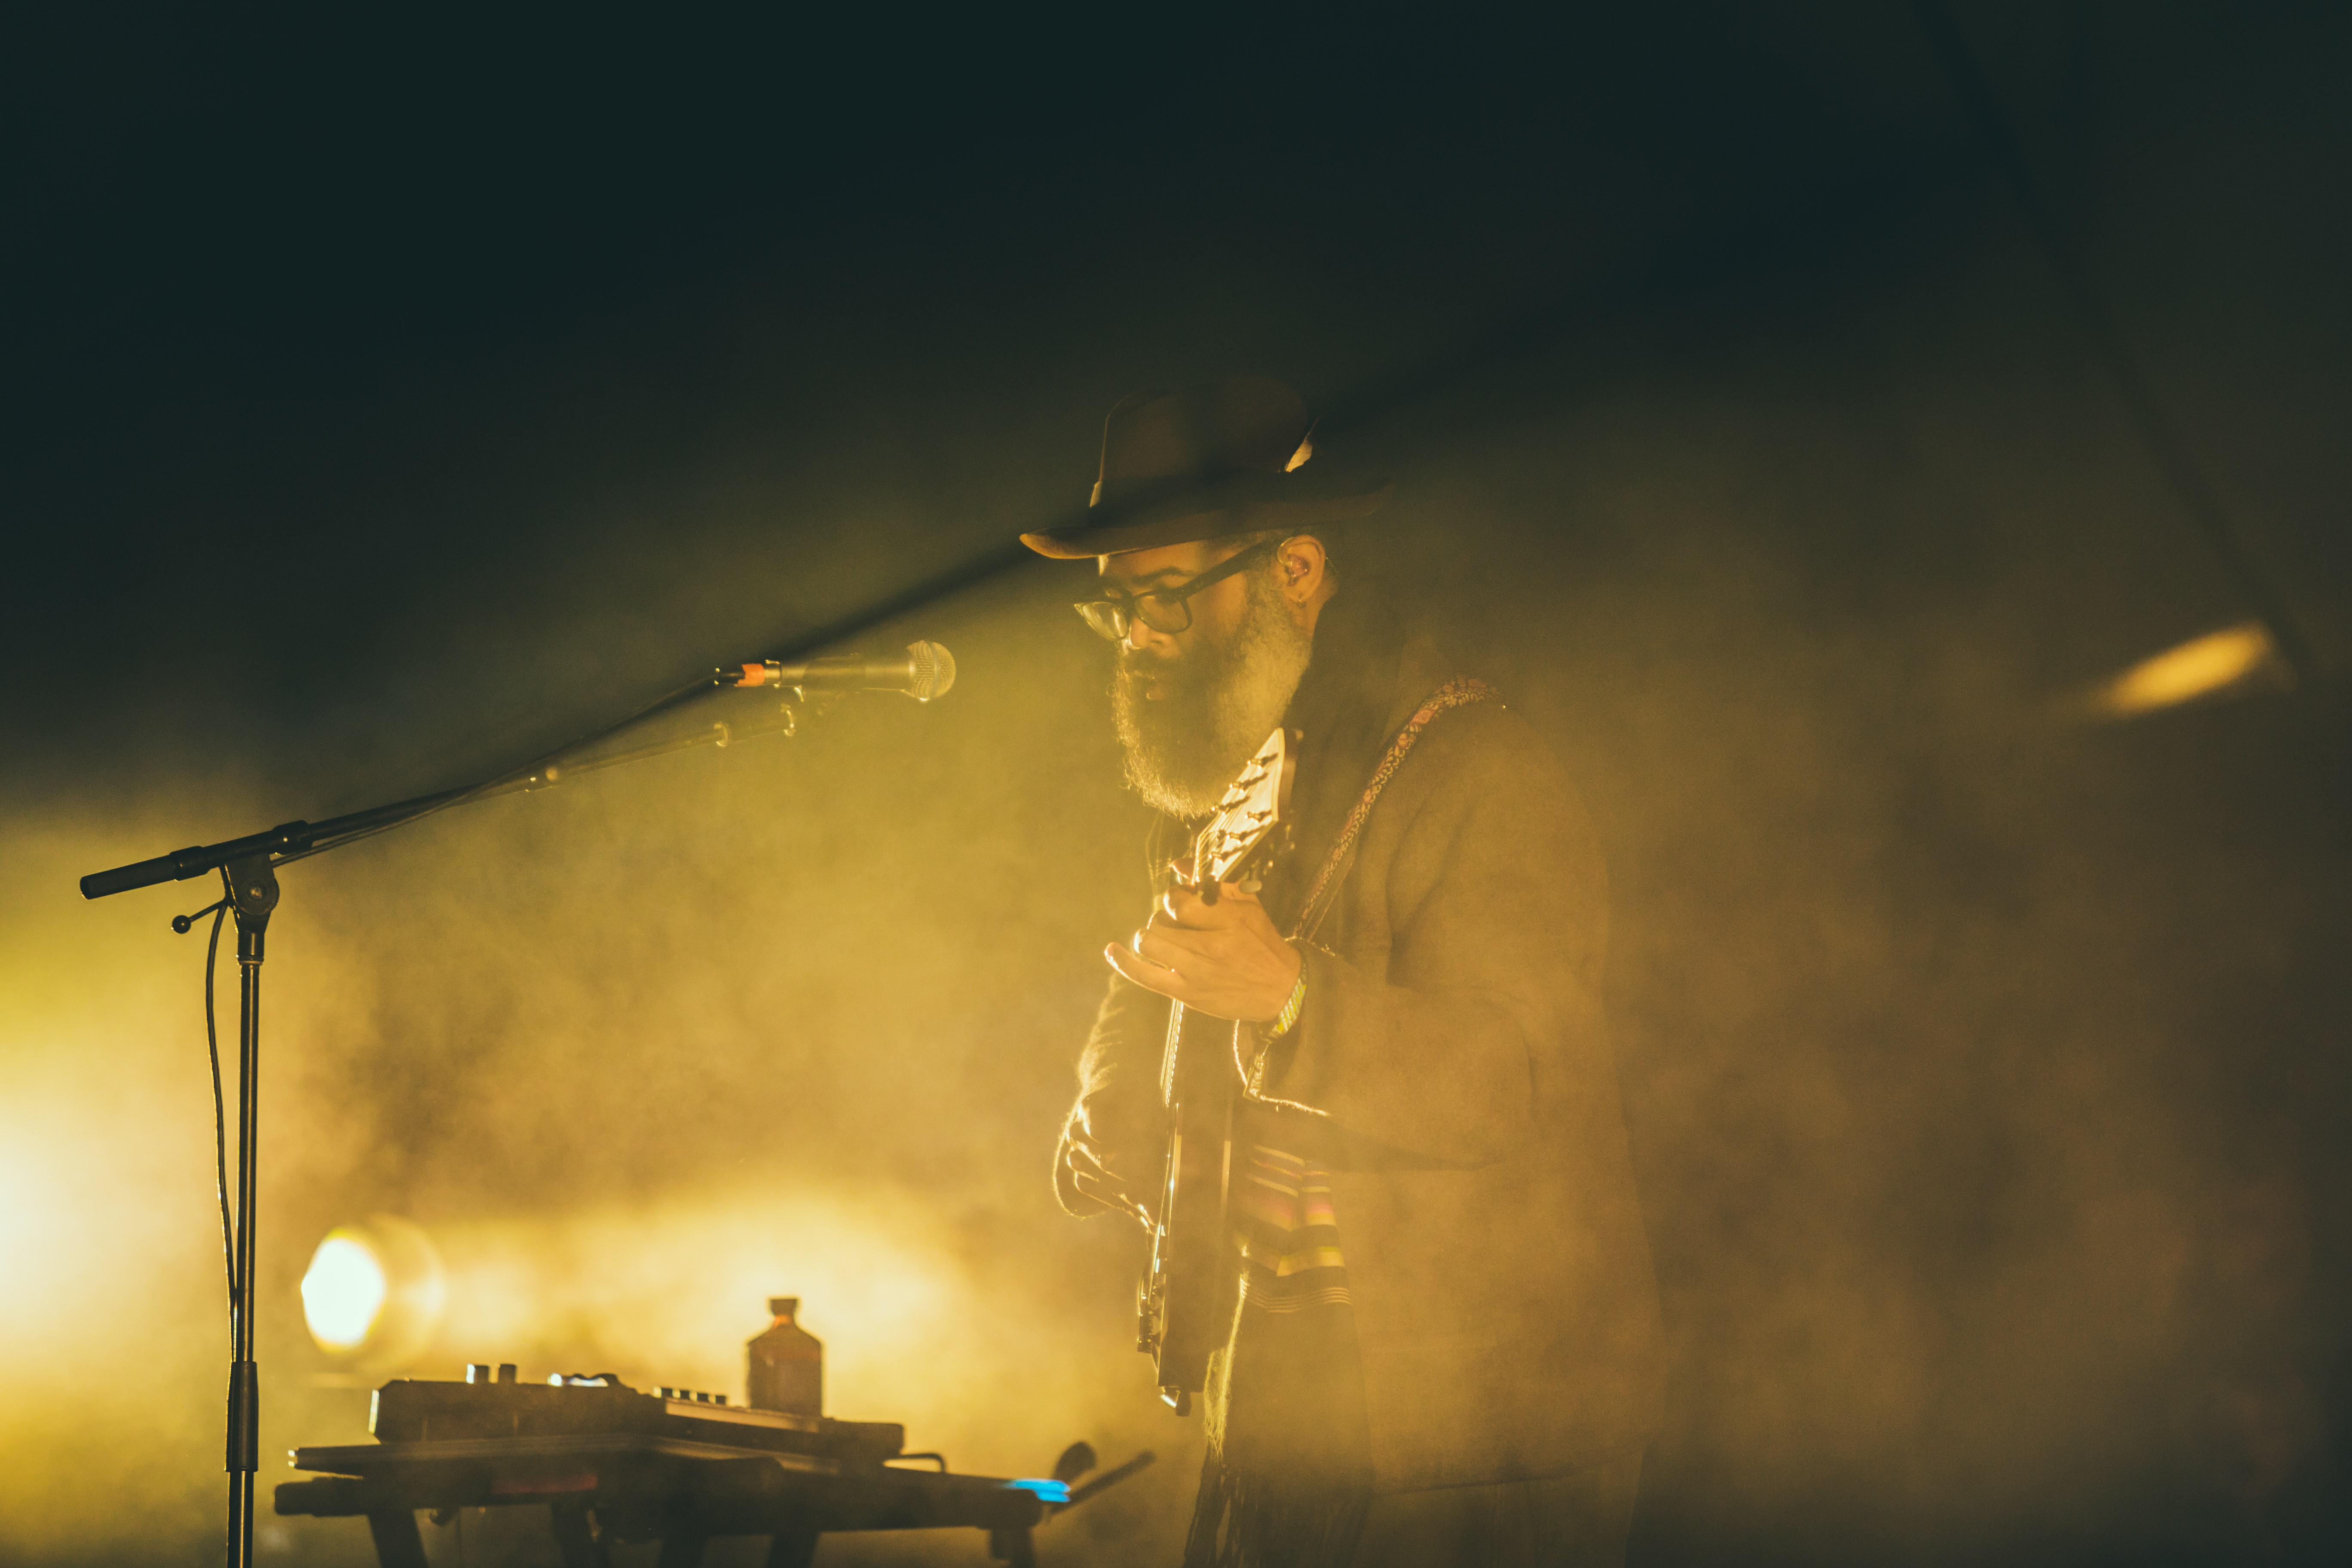 Musician glows in yellow smoke and light on stage at a show